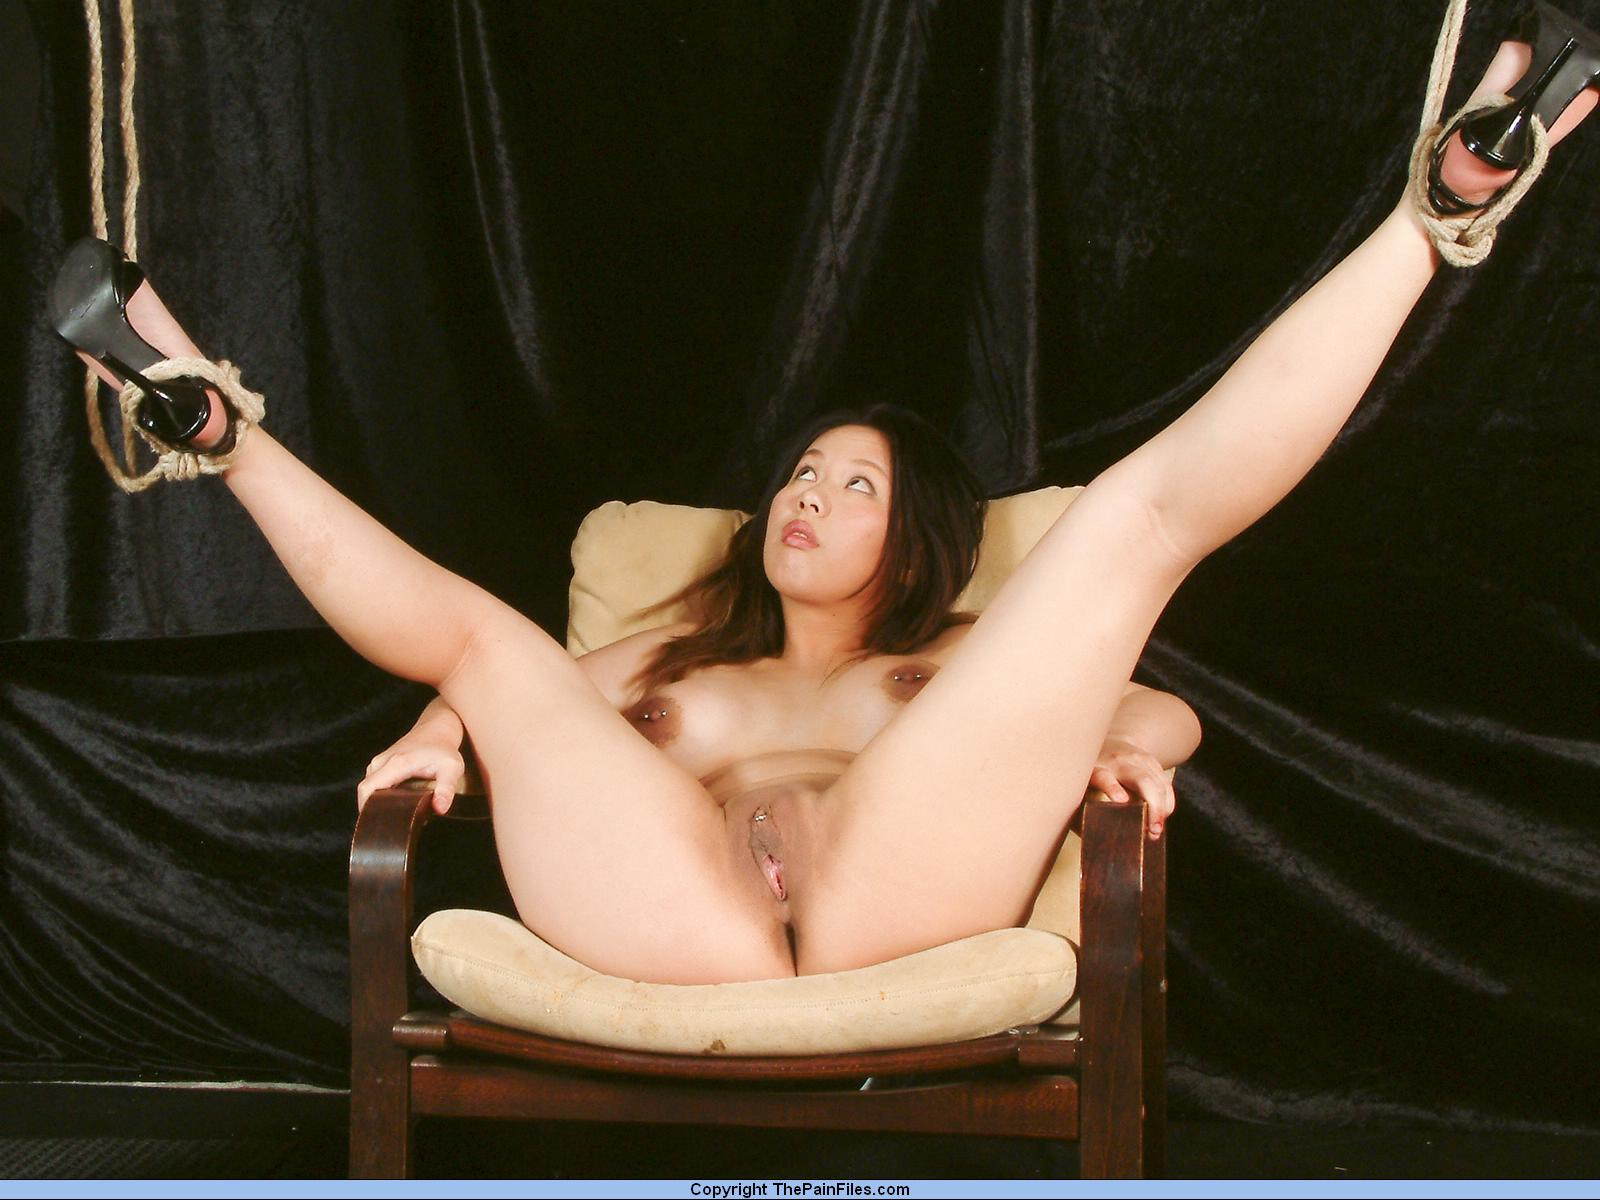 Above told Bdsm beautiful asian image